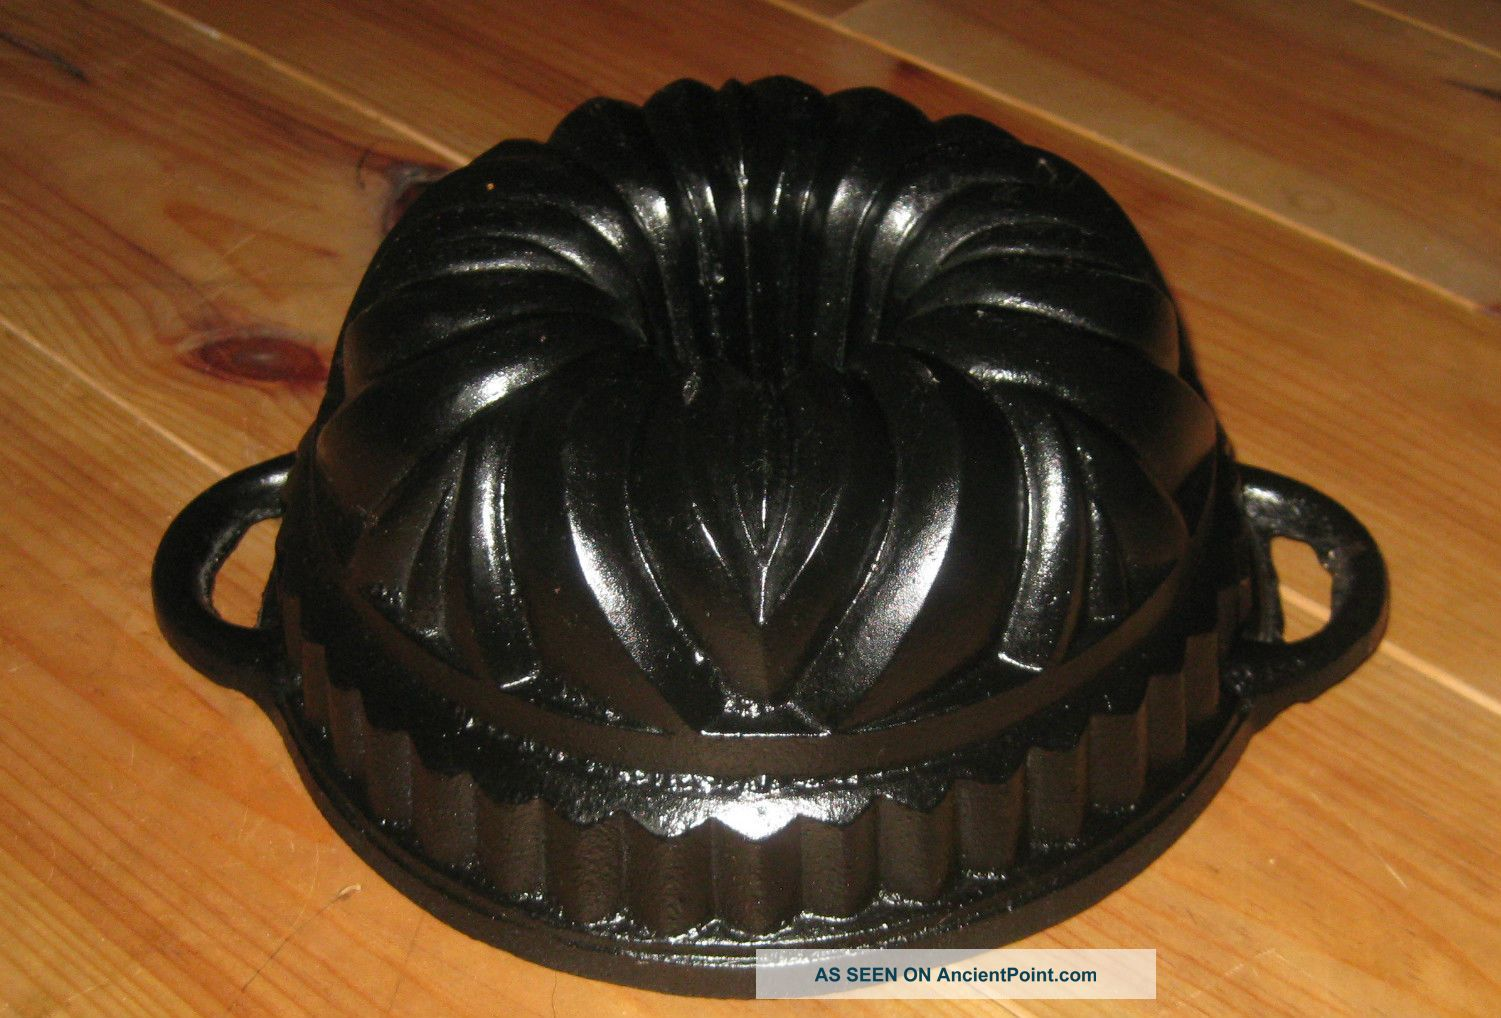 Exceptionally Very Old Small Heavy Antique Cast Iron Bundt Pan Germany 2997 G Other Antique Home & Hearth photo